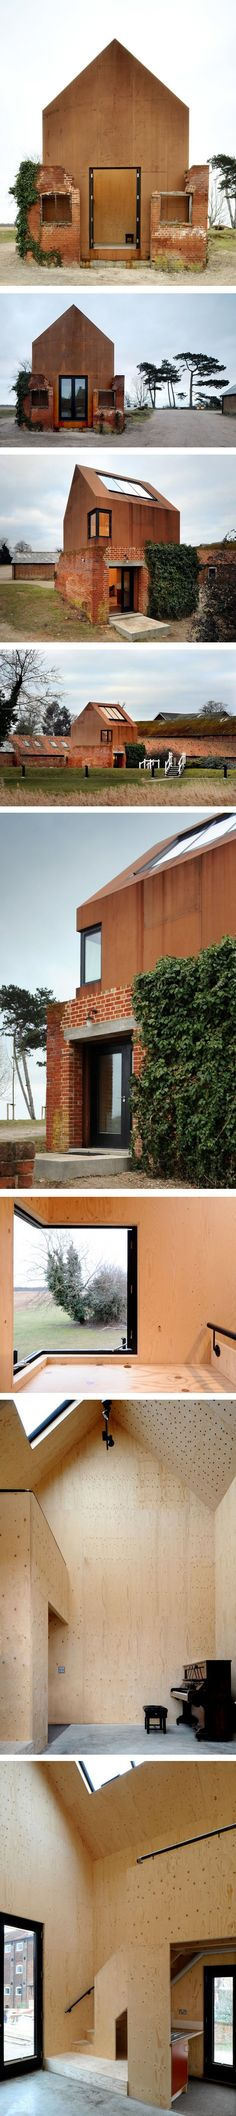 The Dovecote Studio by Haworth Tompkins Architecture in Suffolk, United Kingdom.  An artist's studio inserted into a ruined Victorian dovecote.